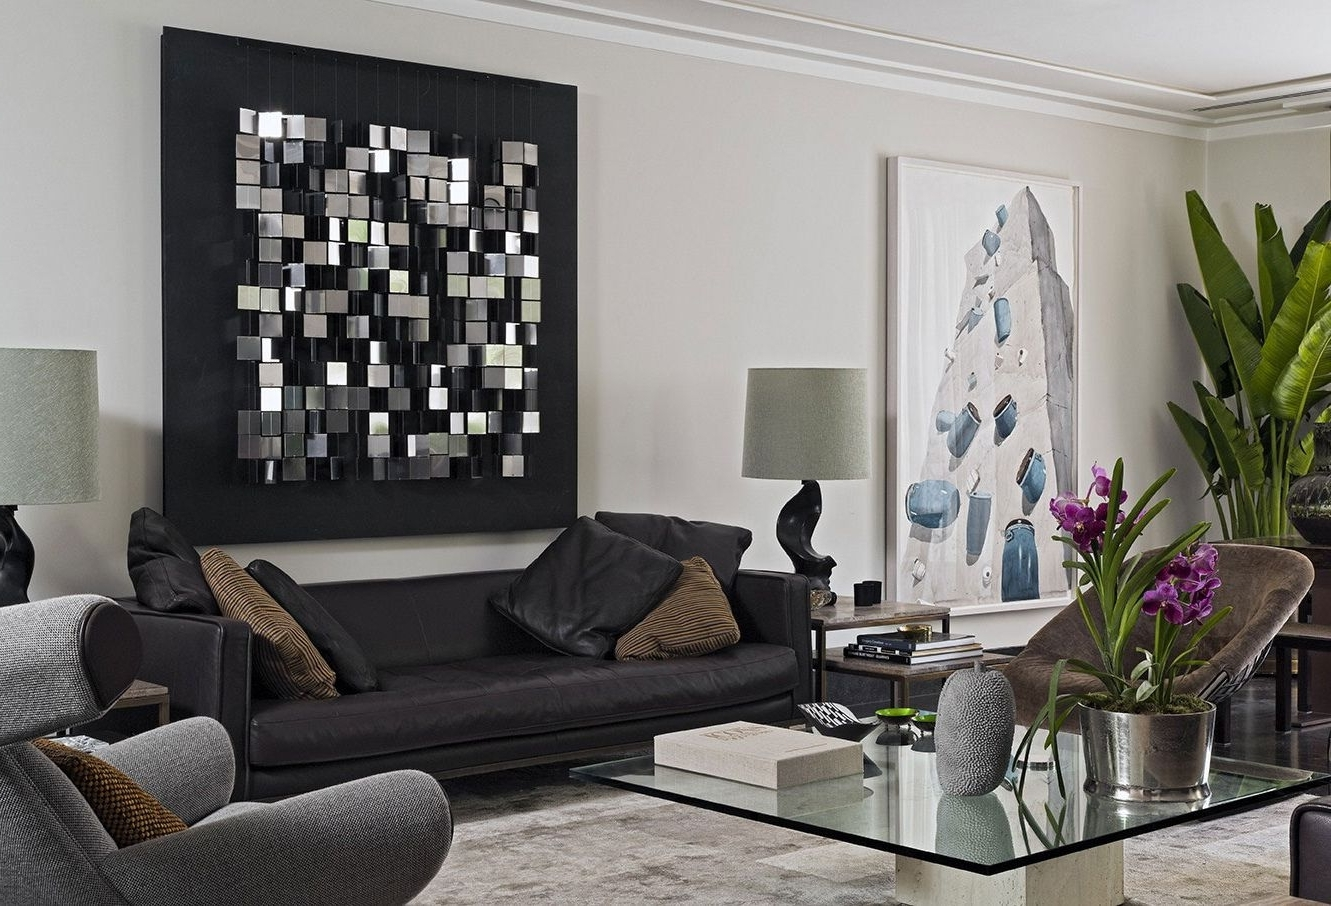 Most Recent Wall Art For Living Room Pertaining To Must Read Tips For Choosing Décor And Art For Your Living Room (View 8 of 15)